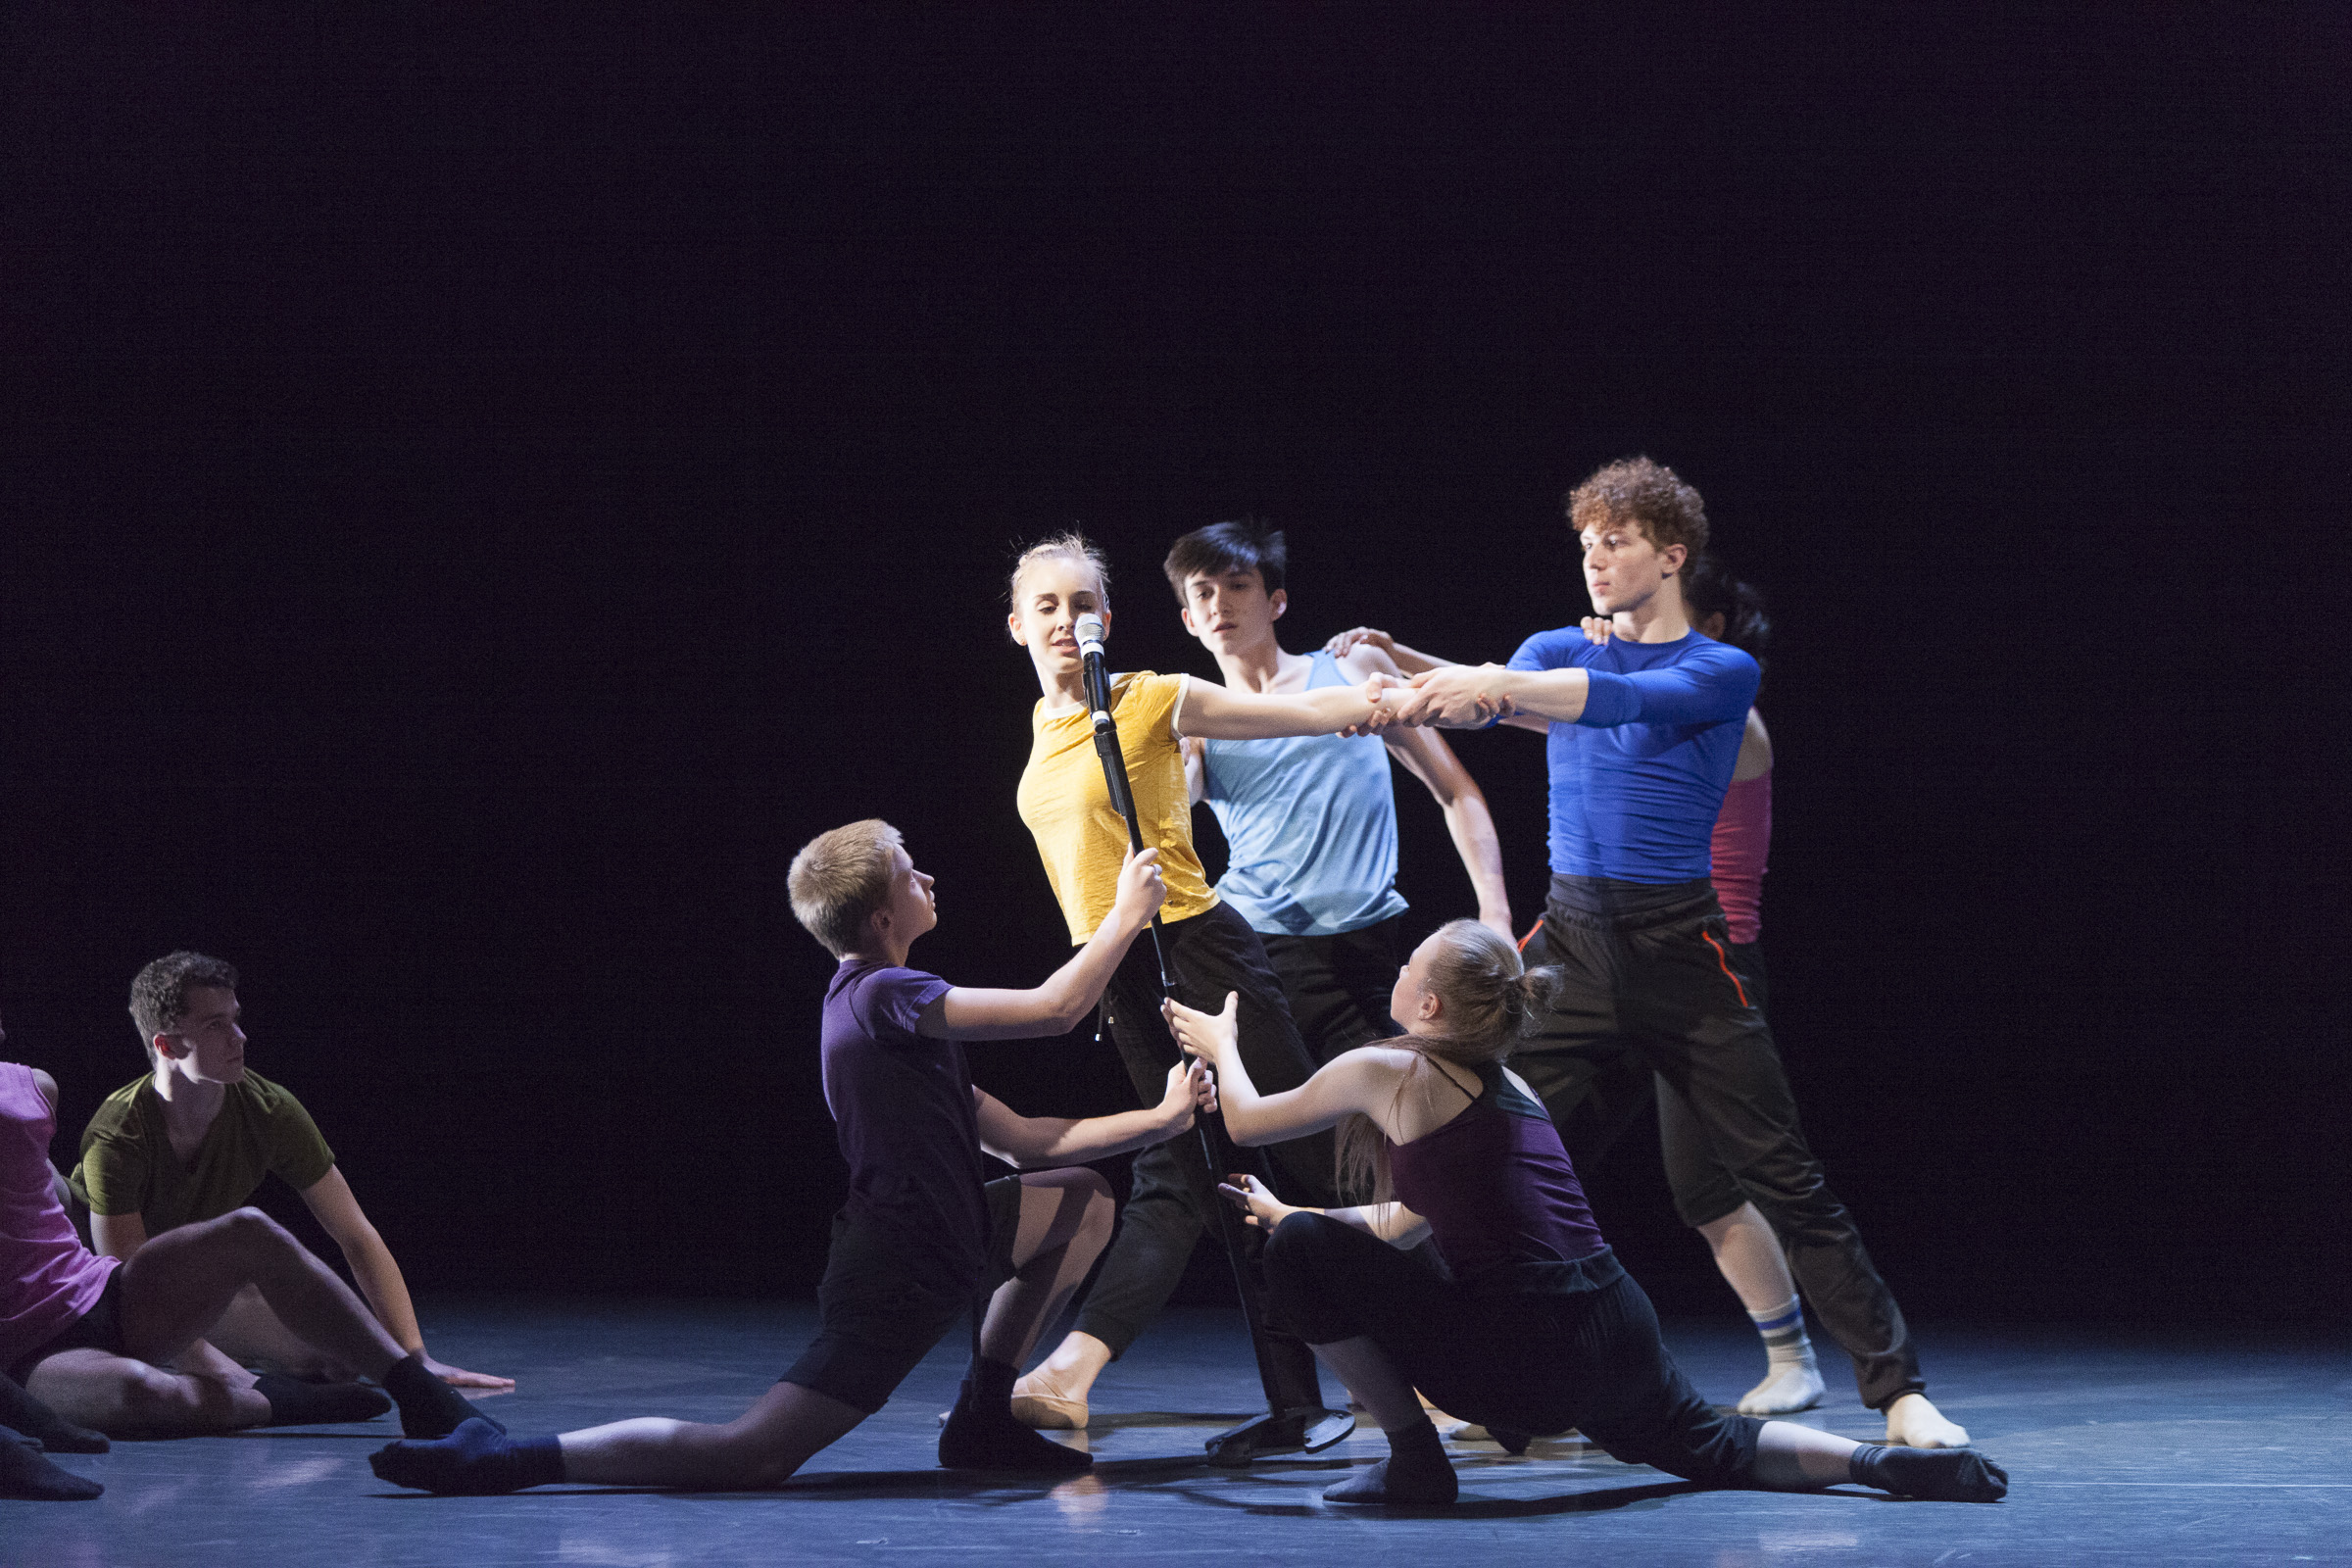 Ethan Chudnow (San Francisco Ballet School), Kolbie Edwards (Canada's Royal Winnipeg Ballet School), Ashton Gordon (NBS), Carl Becker (Palucca Hochschule für Tanz Dresden), Celine Wetzels (Codarts Rotterdam) and Sasha Chernjavsky (Houston Ballet Academy) in  I Wonder -  AI17 - Canada's National Ballet School. Photo by  Aleksandar Antonijevic